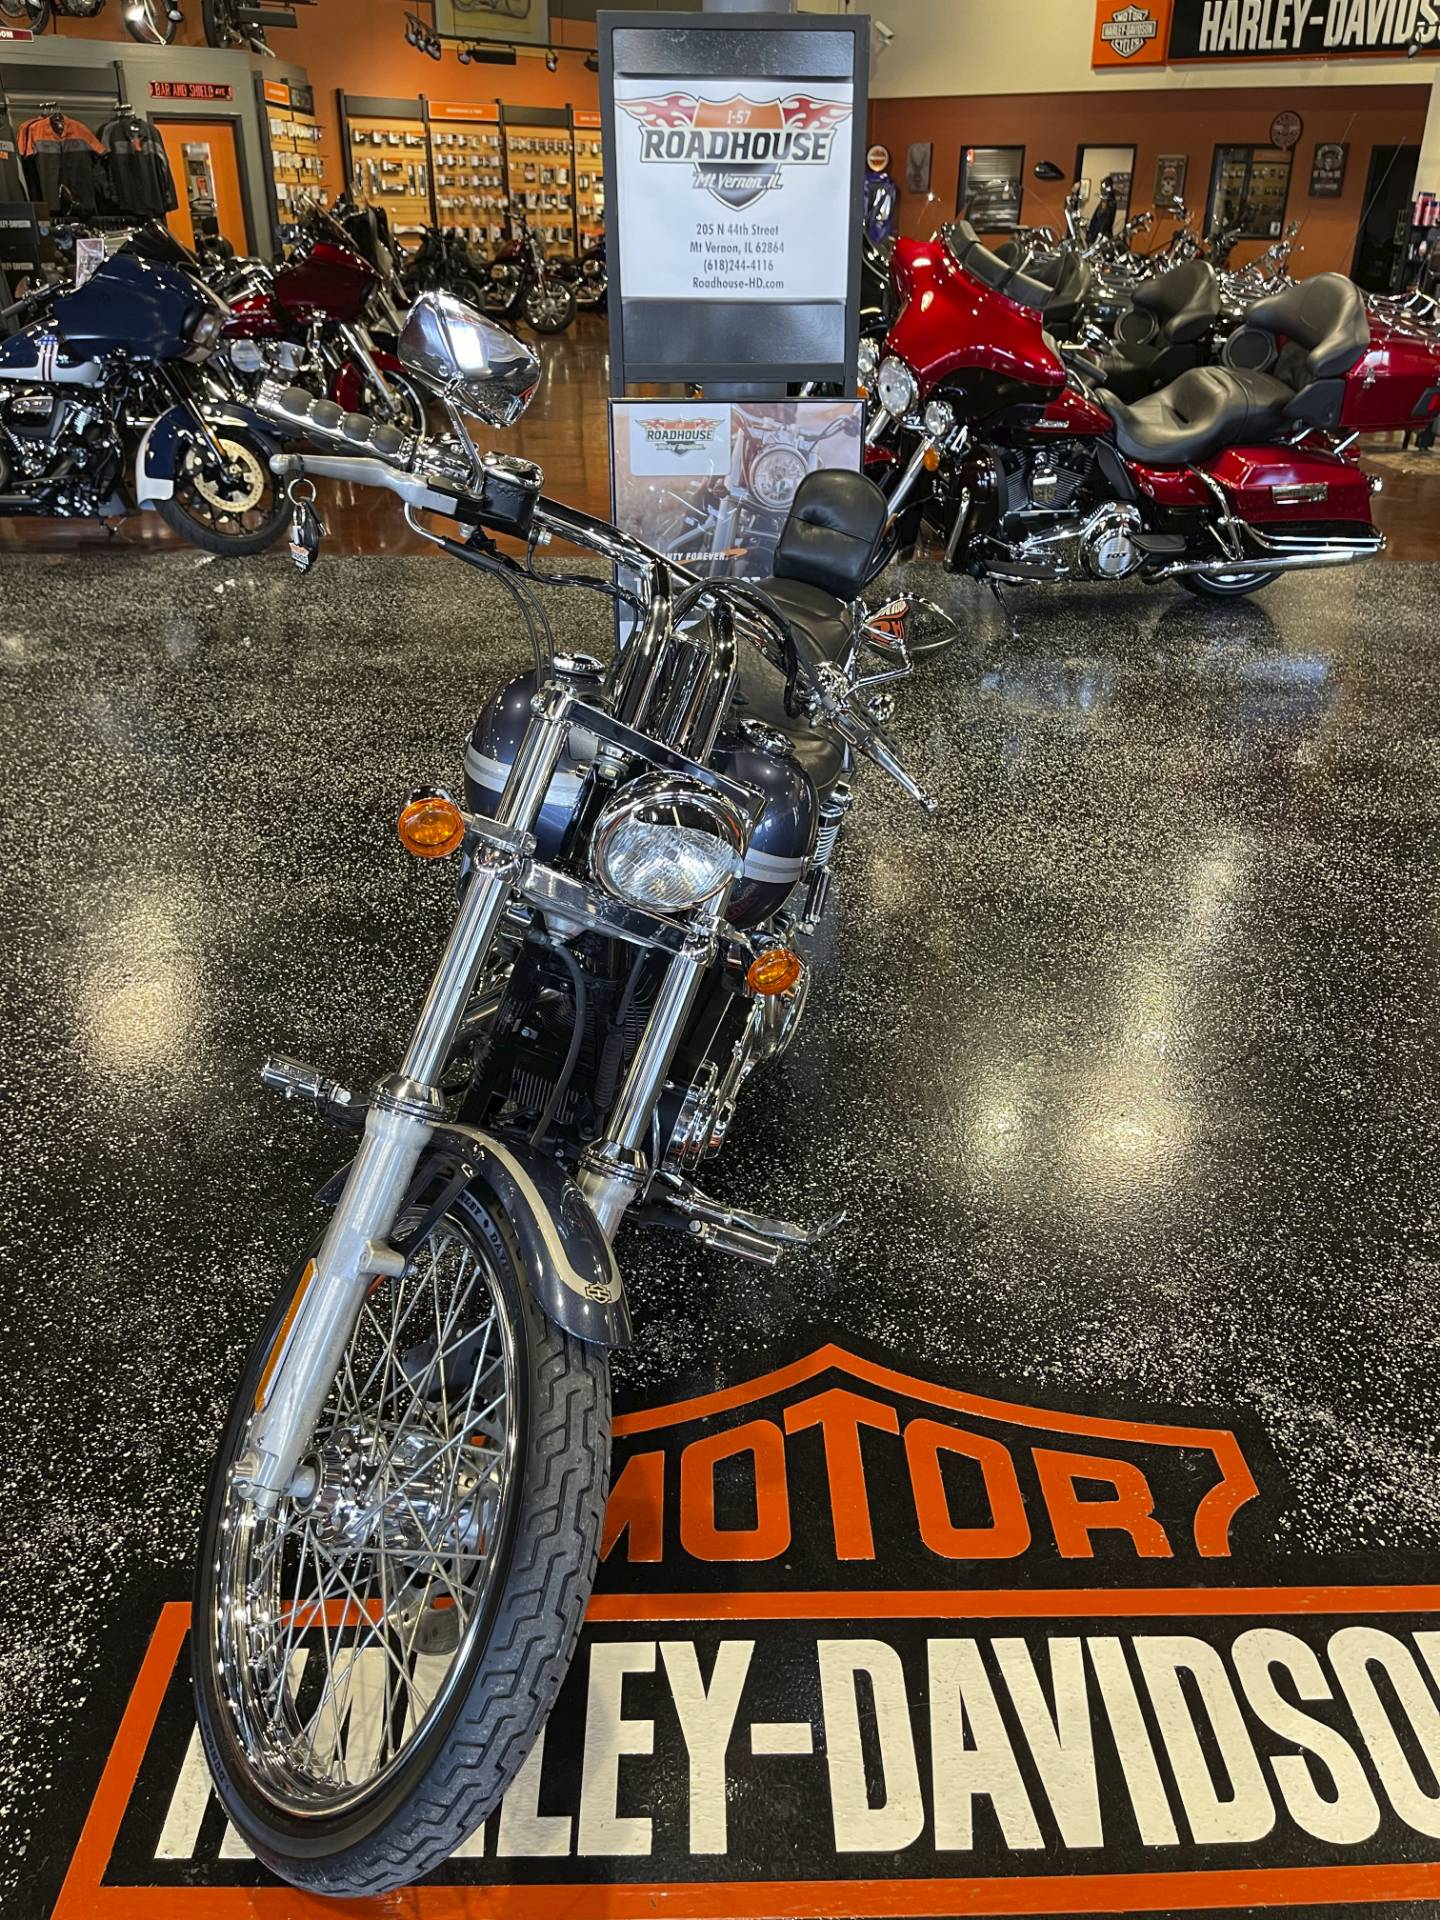 Used 2003 Harley Davidson Fxdwg Dyna Wide Glide Gunmetal Pearl Motorcycles In Marion Il U301067